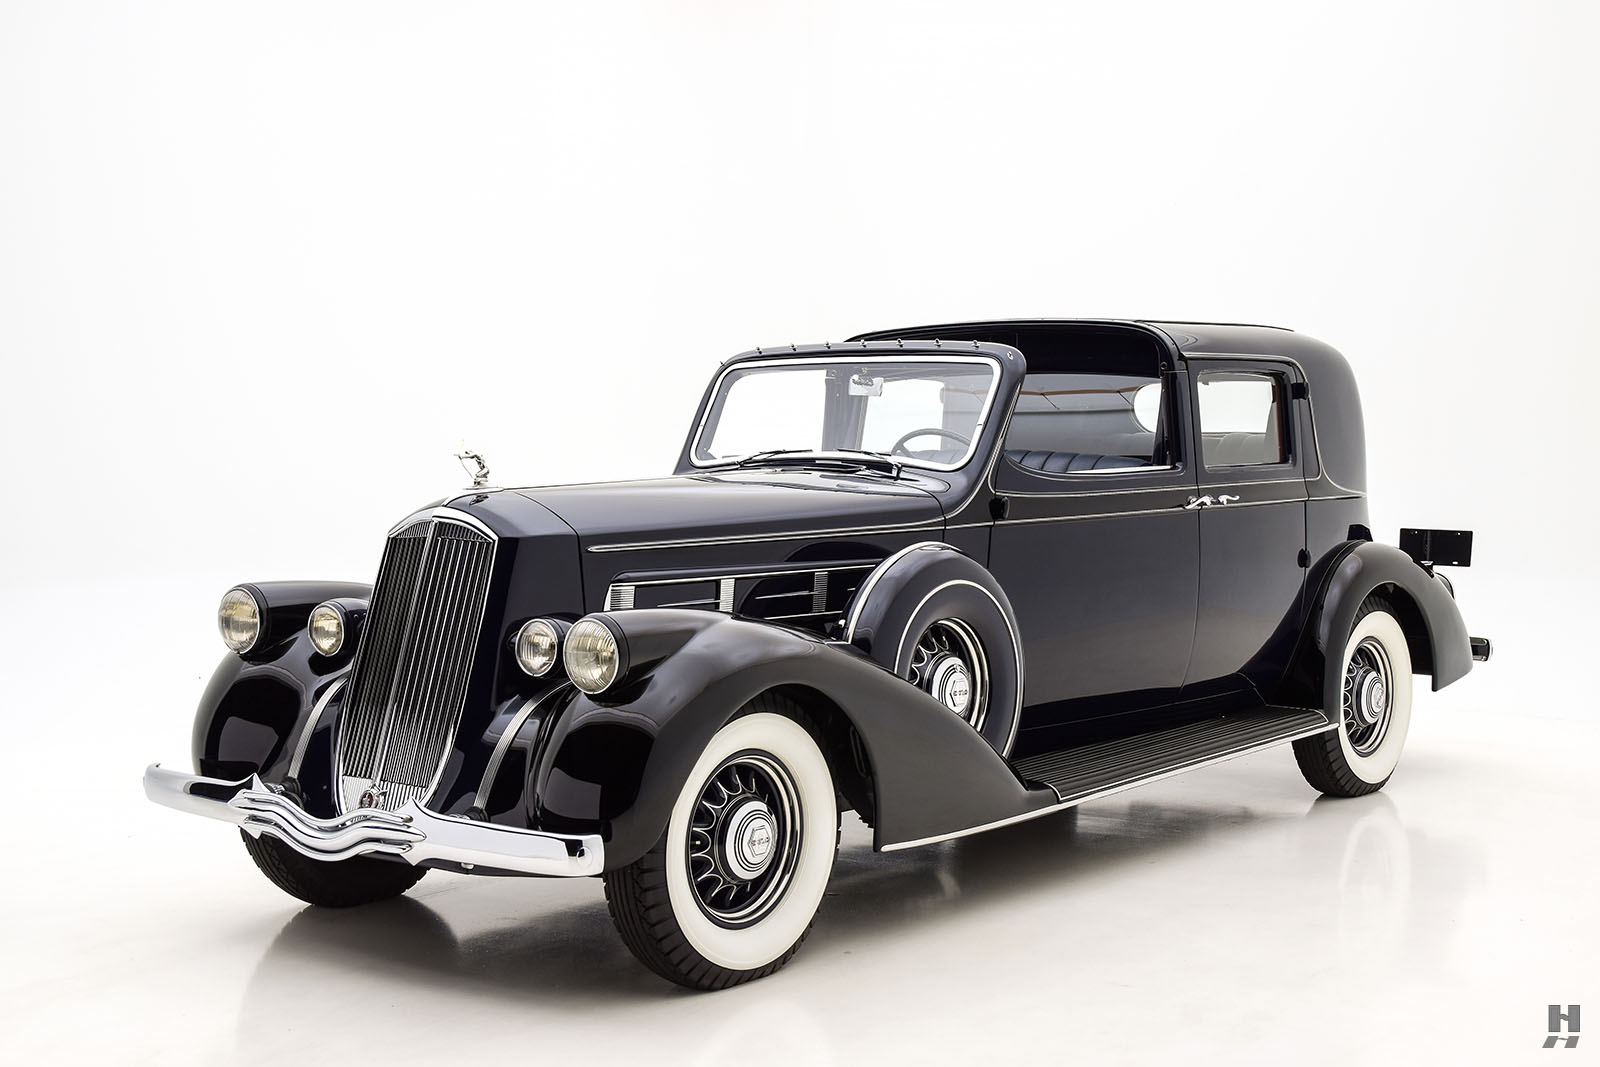 1936 Pierce Arrow Twelve Town Car For Sale | Classic Cars | Hyman LTD